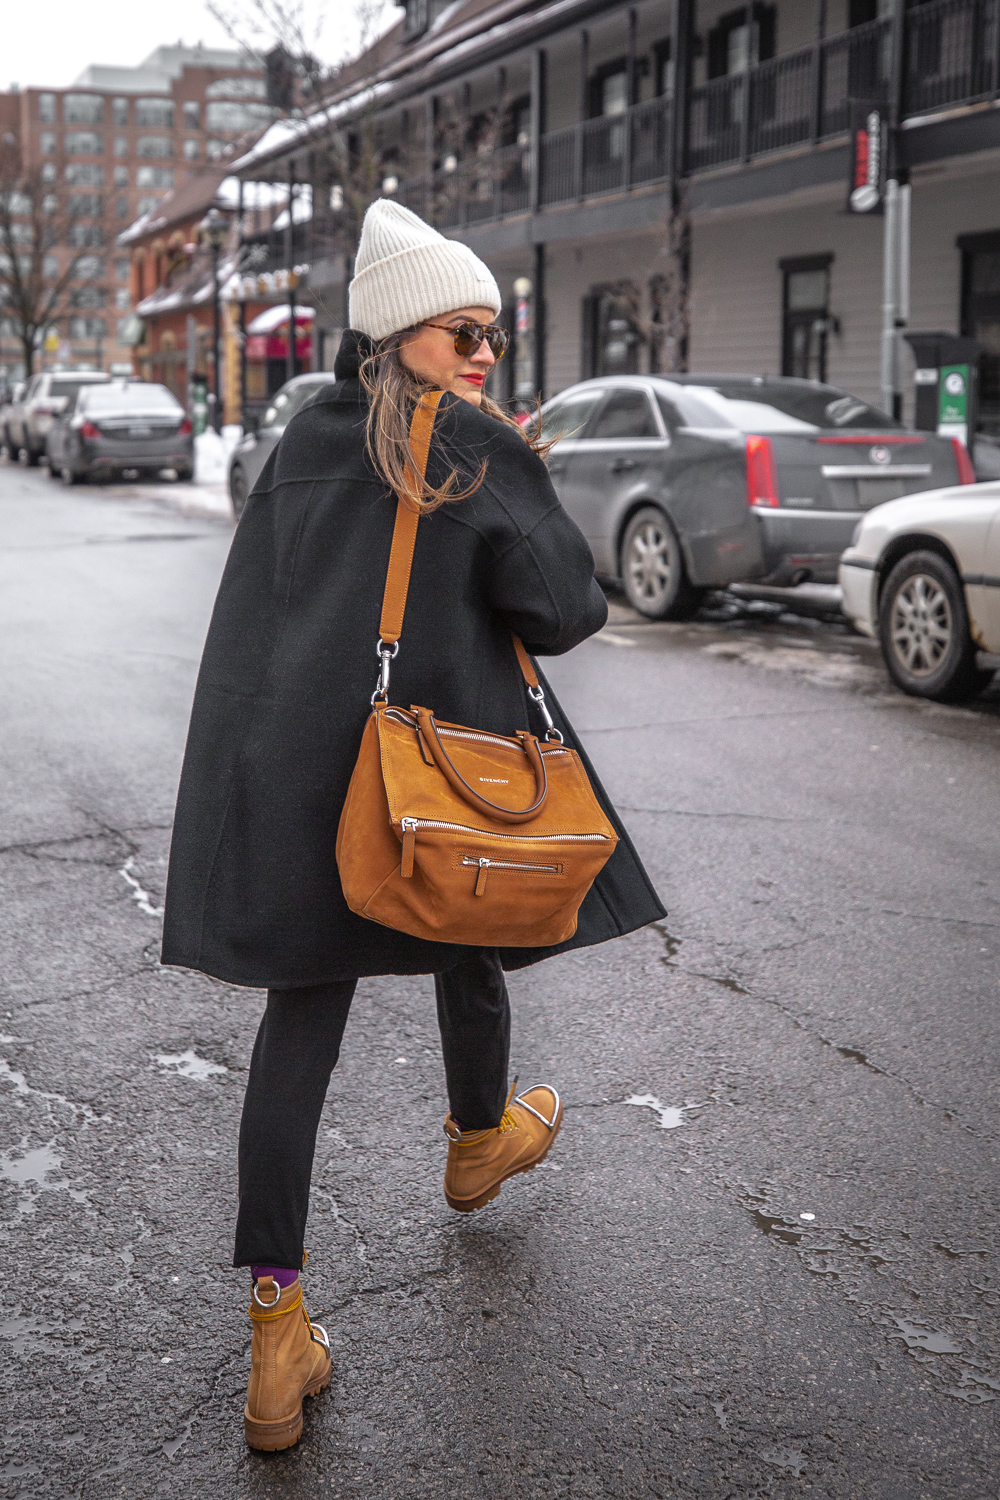 nathalie martin - vince wool coat, acne studios white sweater, pansy beanie, frank and eileen trouser joggers, alexander wang lyndon boots, givenchy medium pandora, bonlook jerry glasses, pinterest @woahstyle_7305.jpg